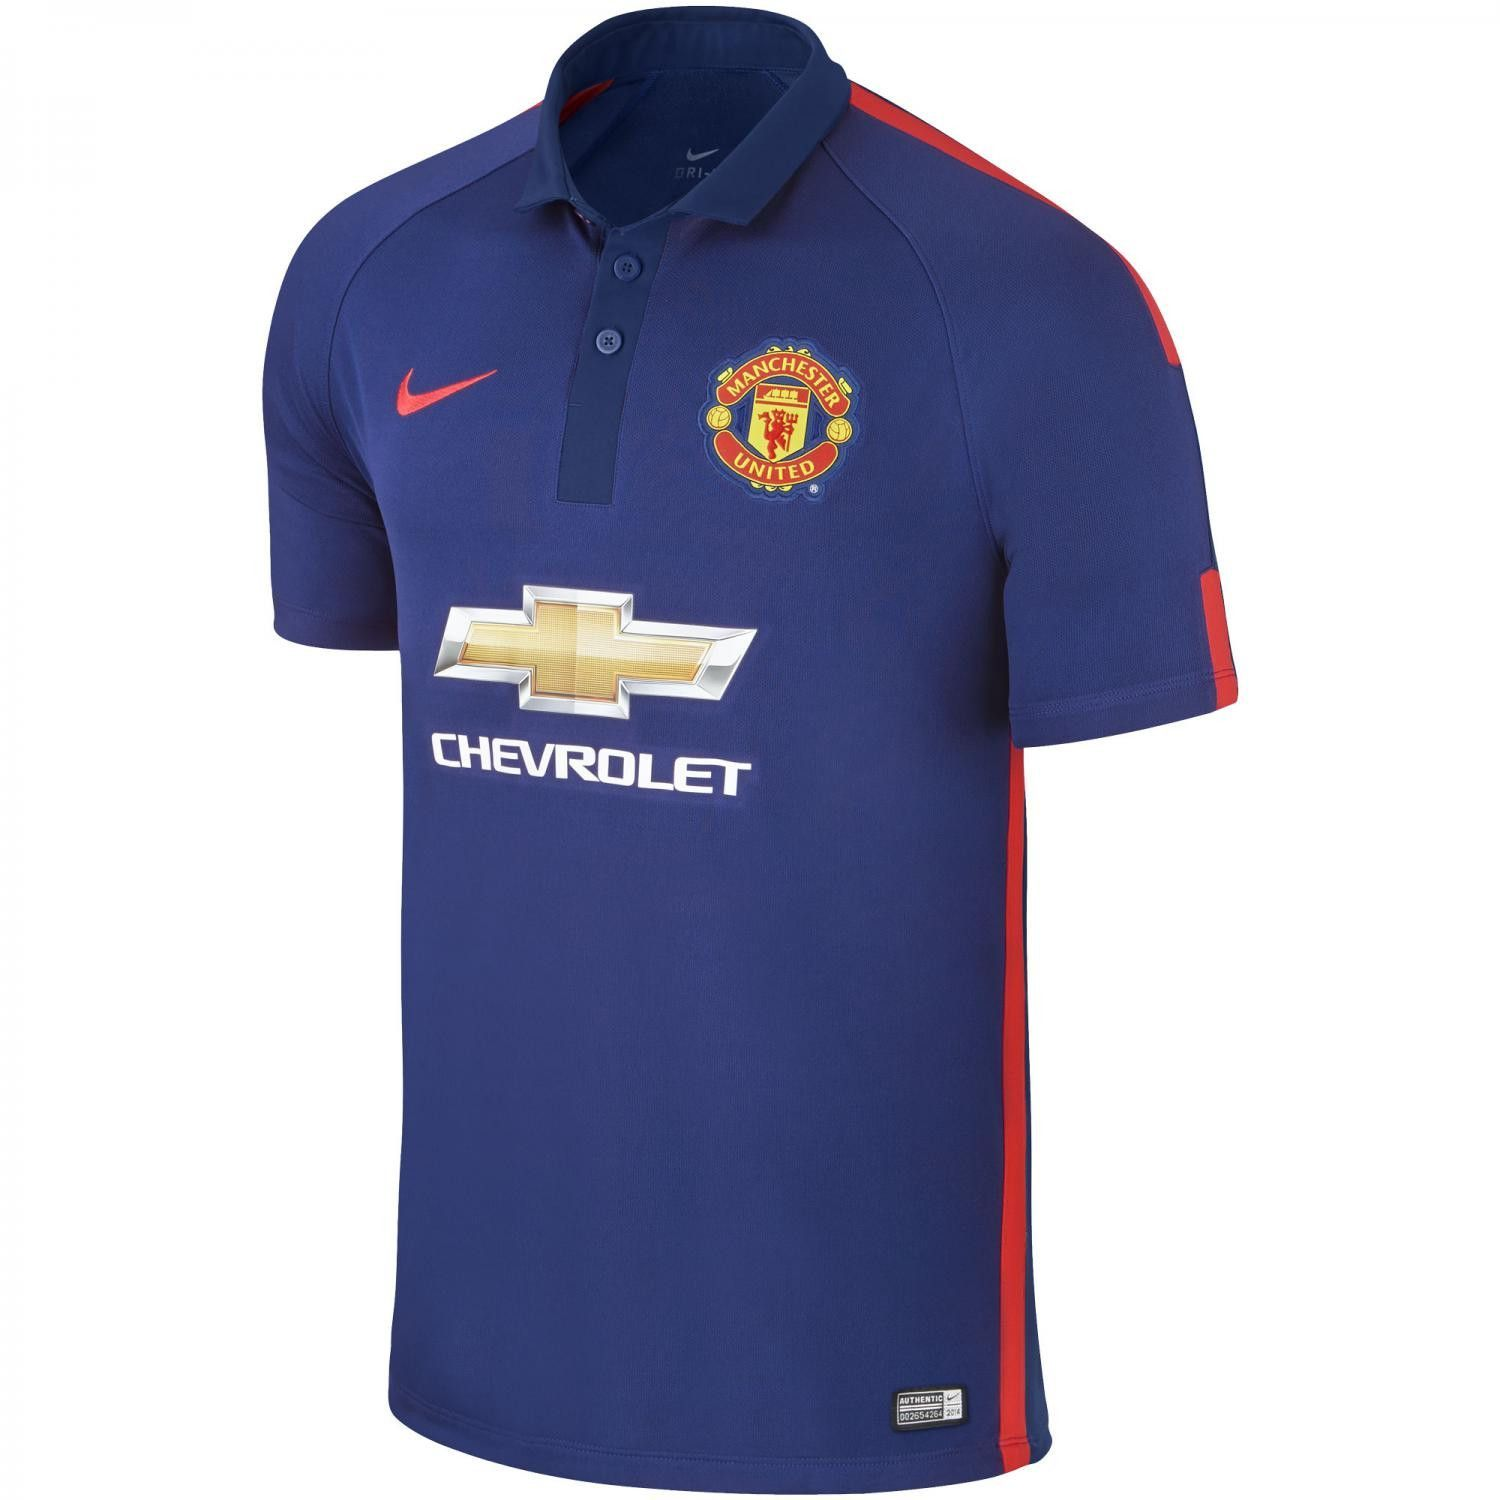 Nike Robin Van Persie Manchester United Third Jersey 2014 15 Designed To Light Up The Pitch The 2014 15 Mancheste Manchester United Van Persie Robin Van Persie